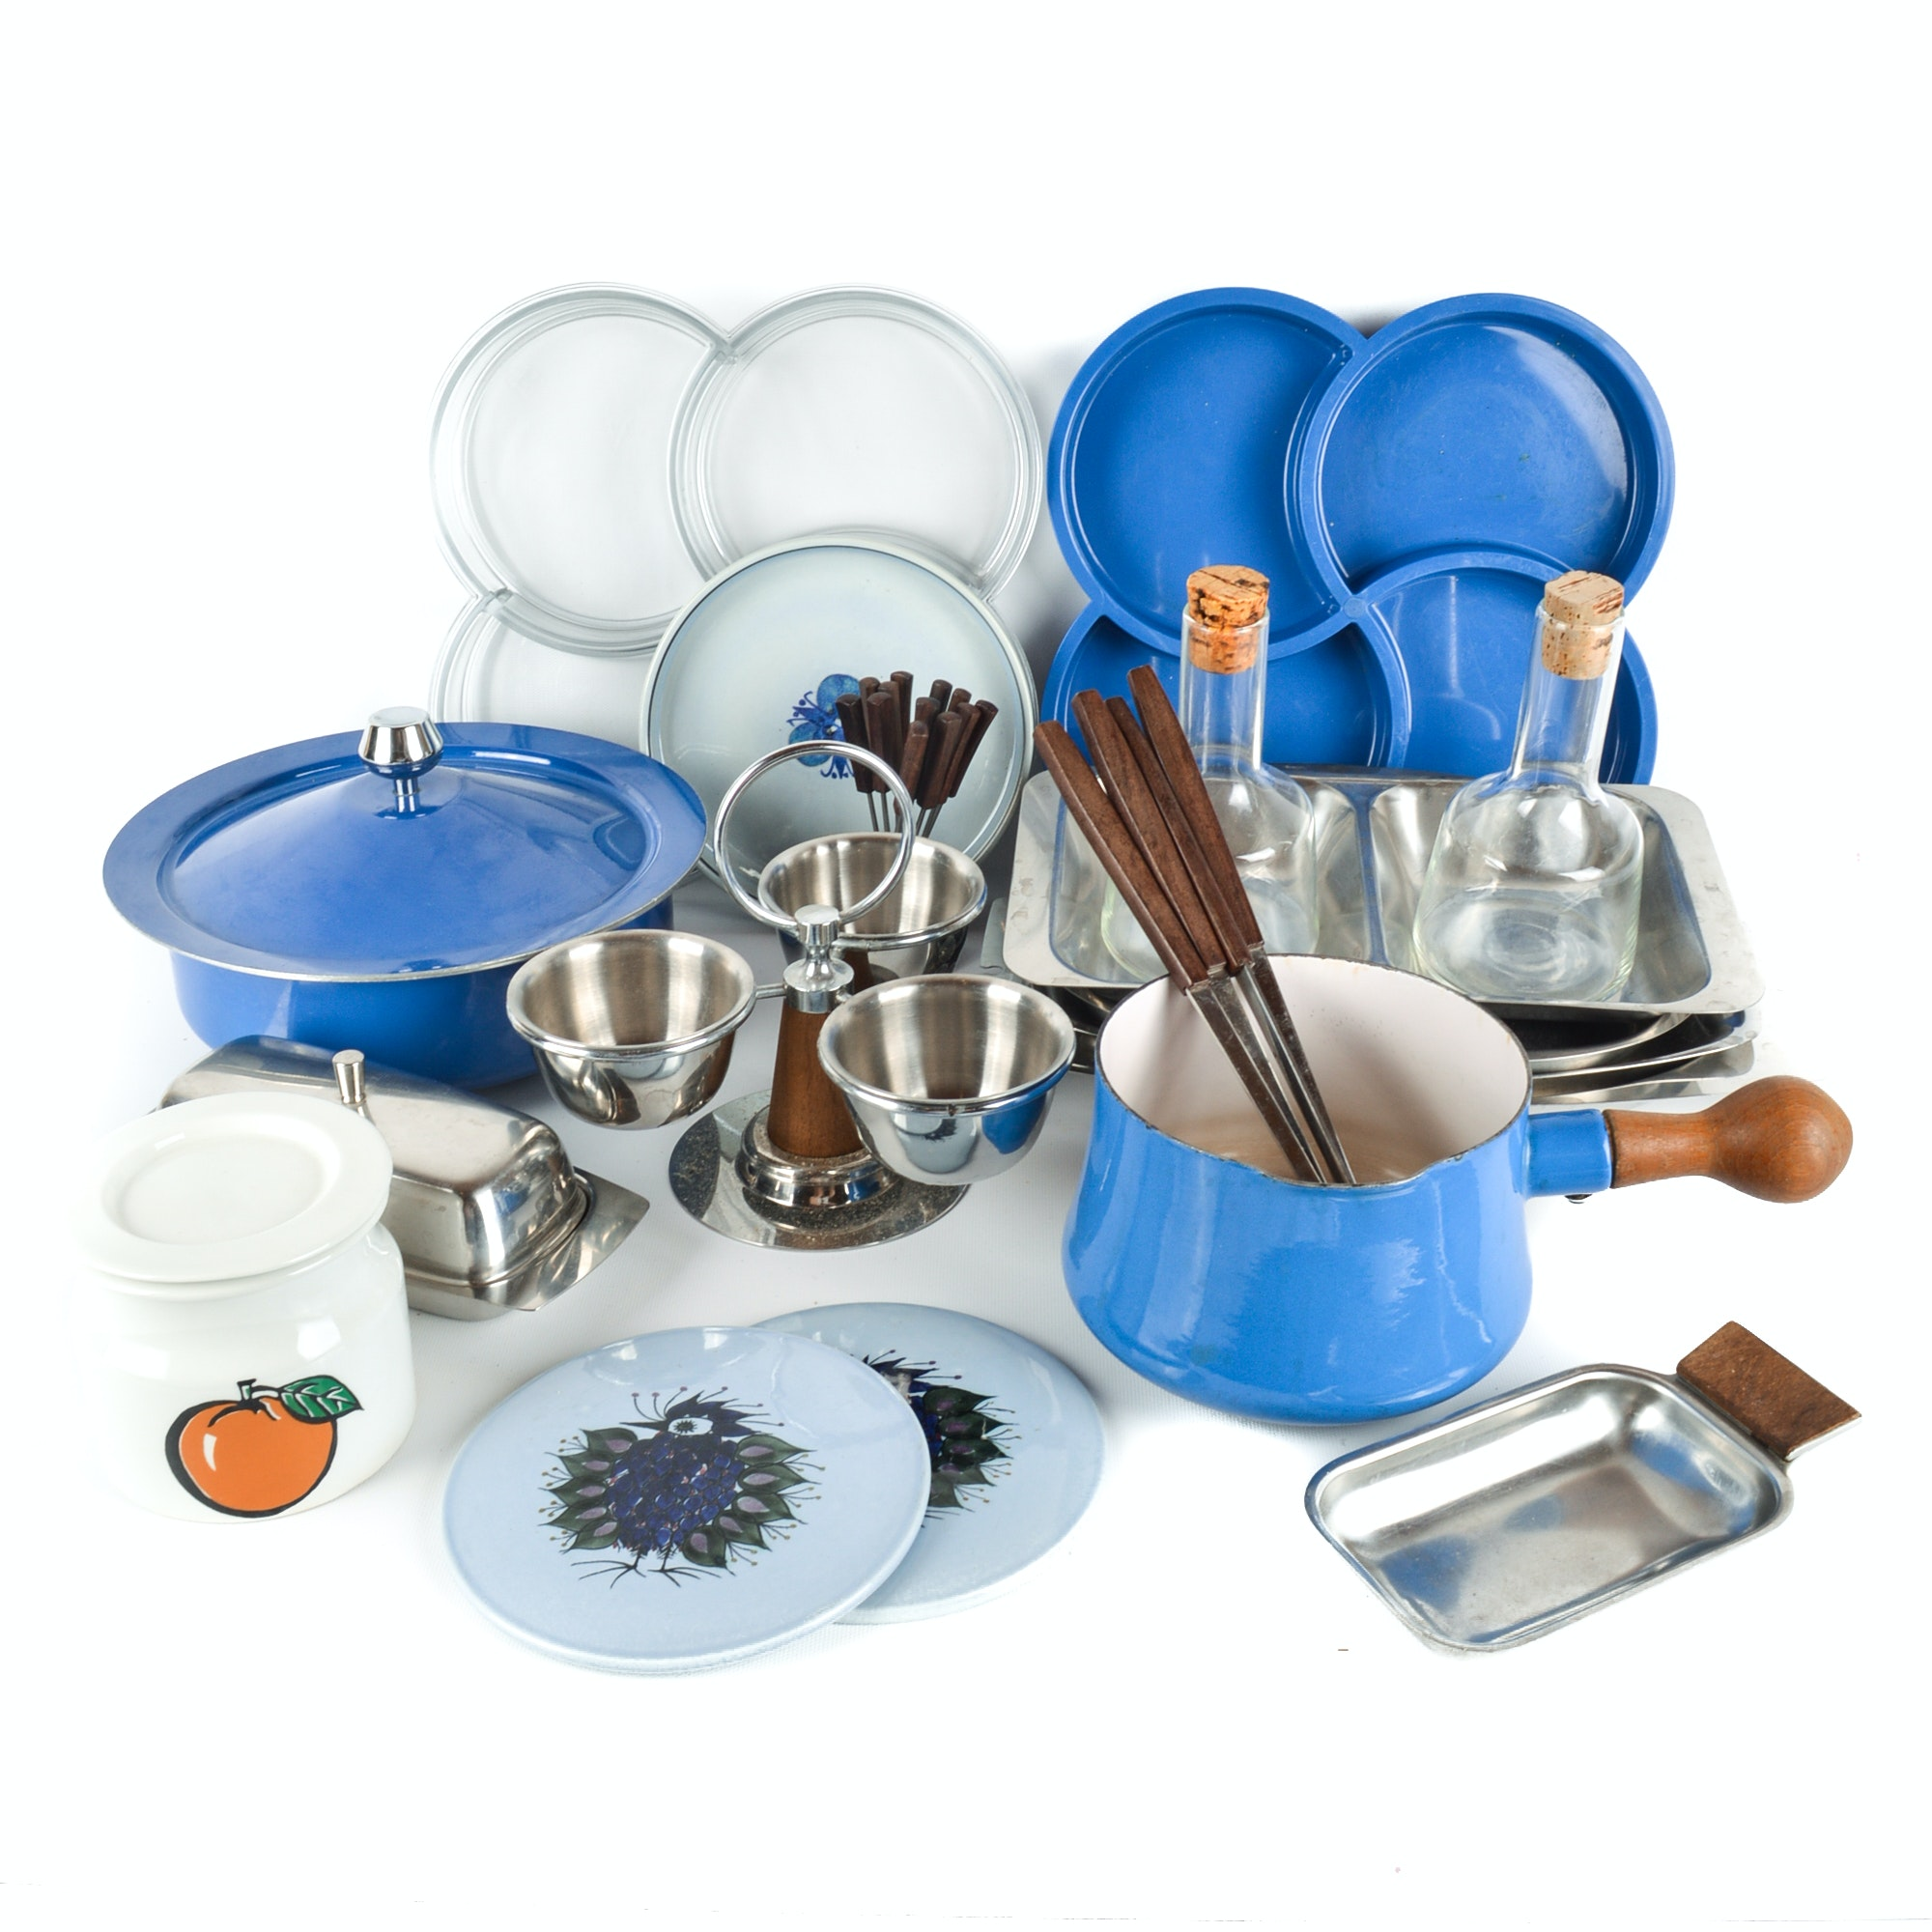 Vintage Kitchenware Including Dansk